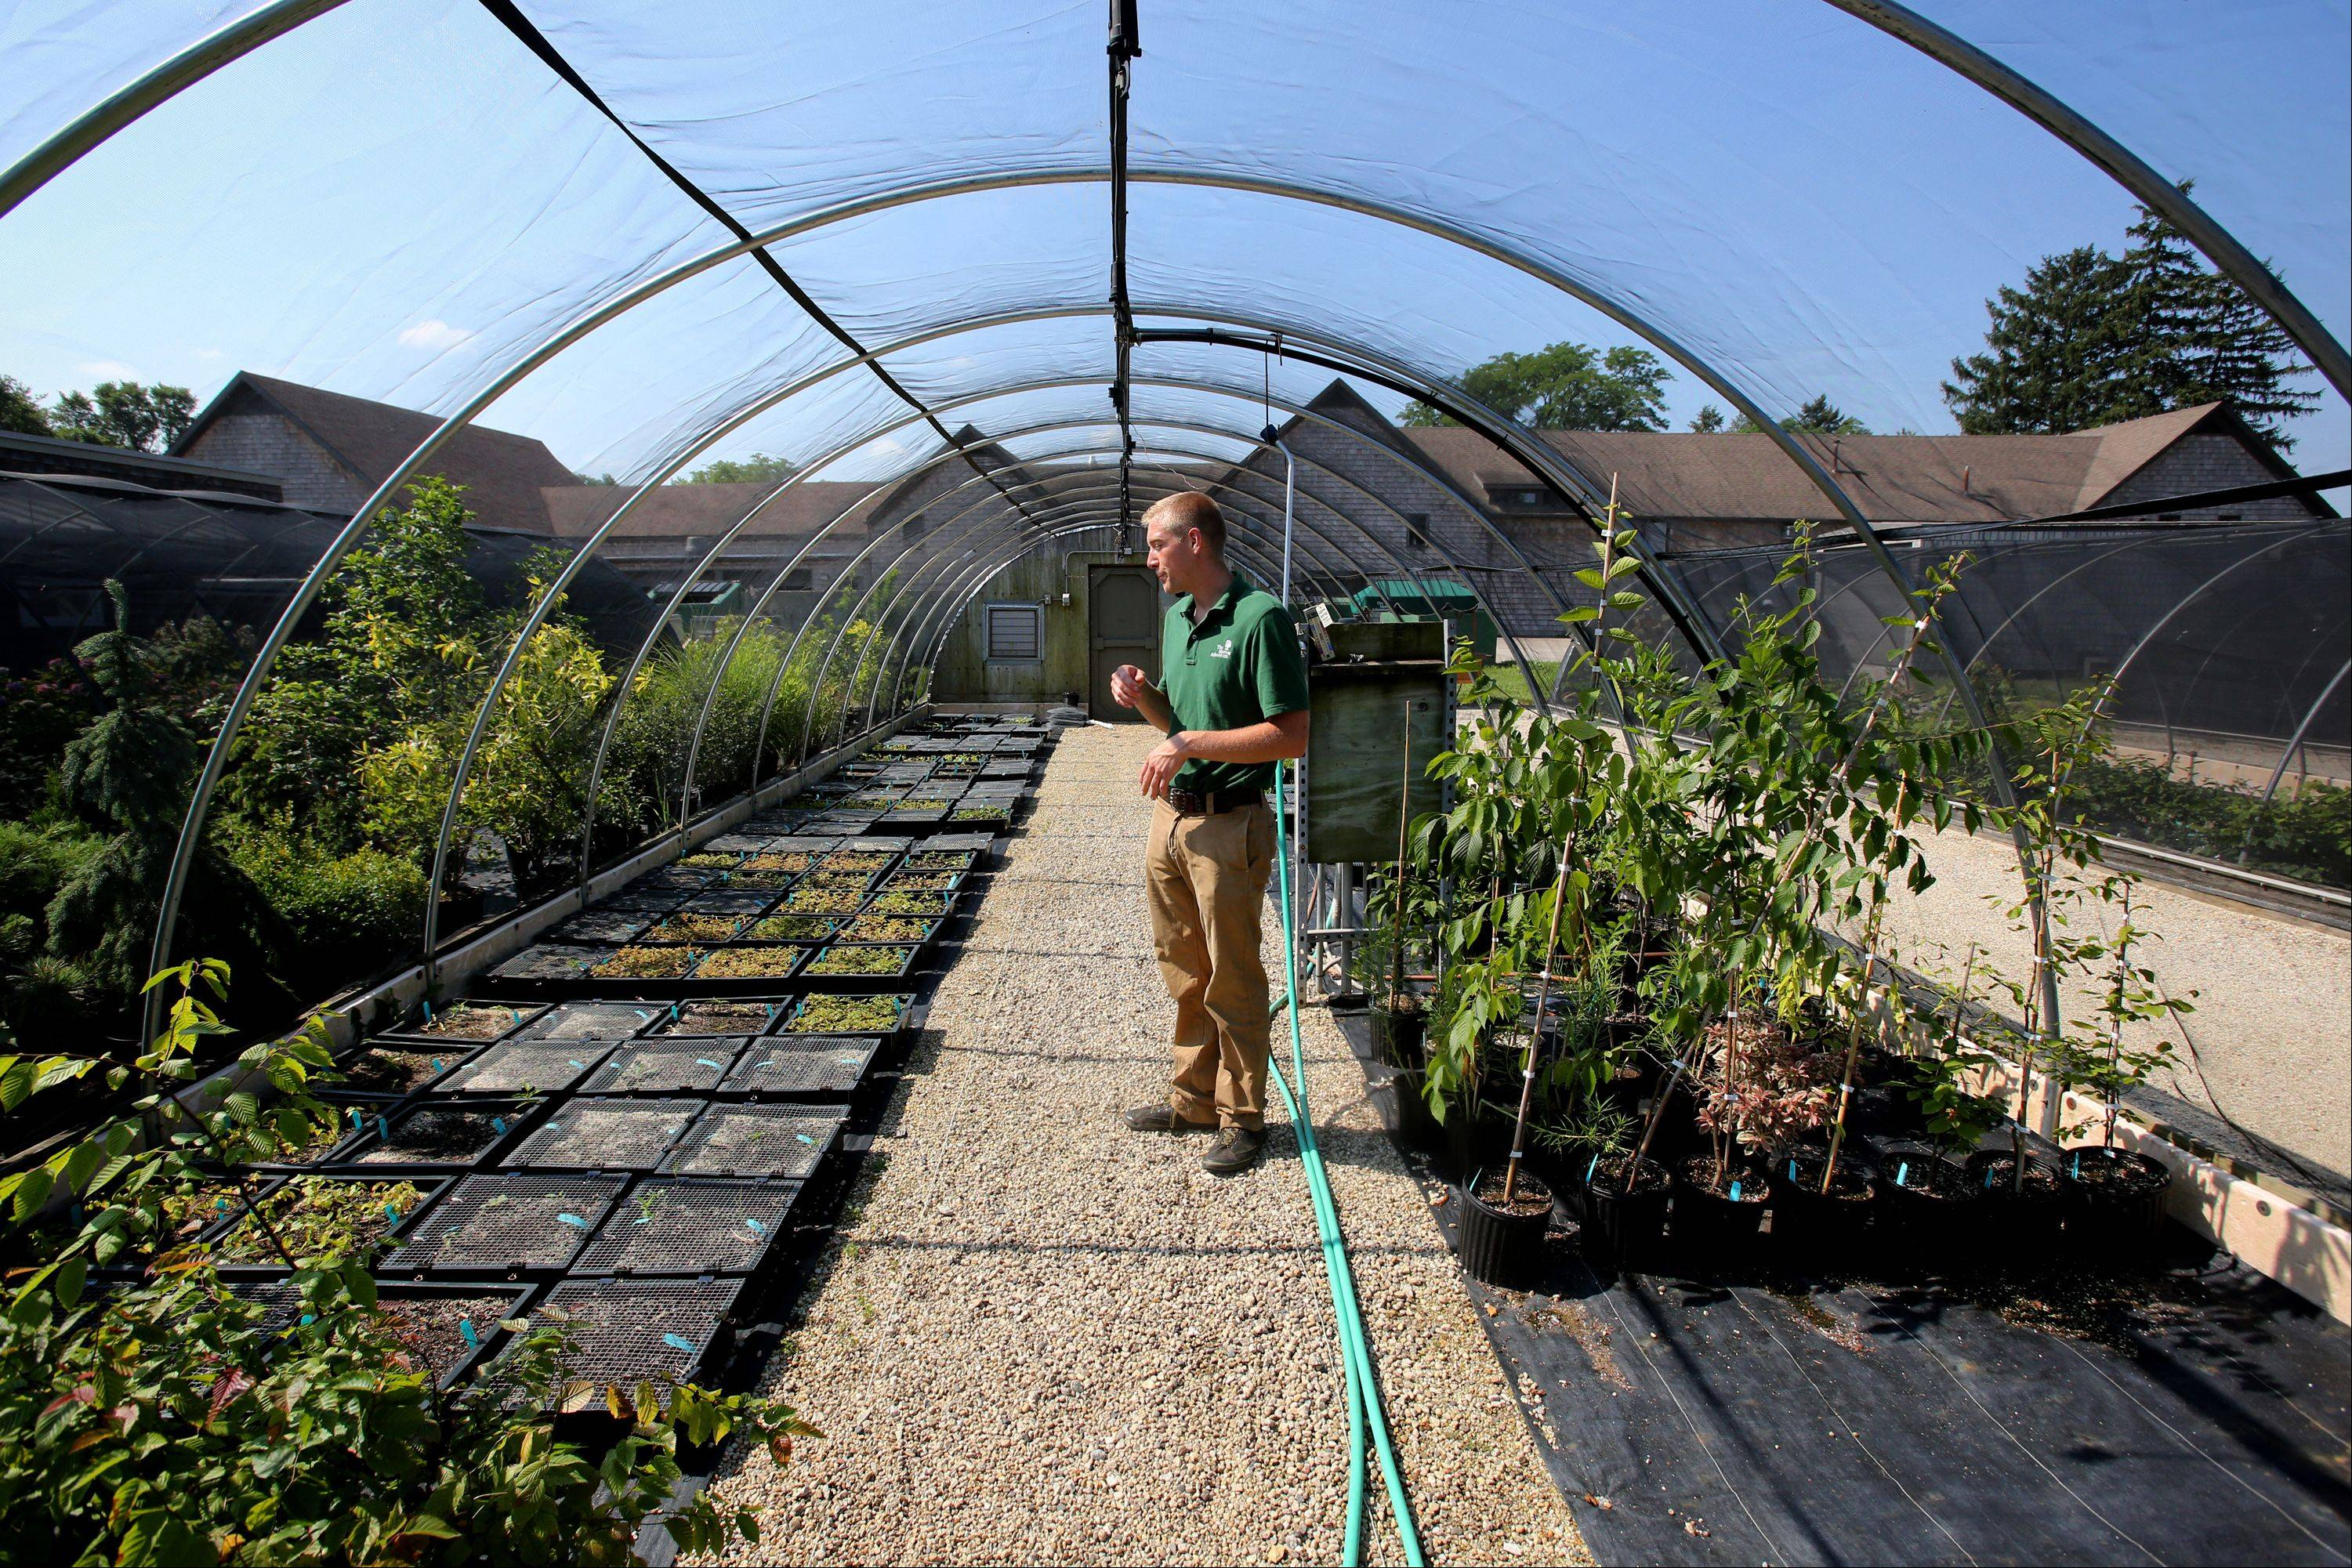 Joe Rothleutner inspects various small trees and shrubs.